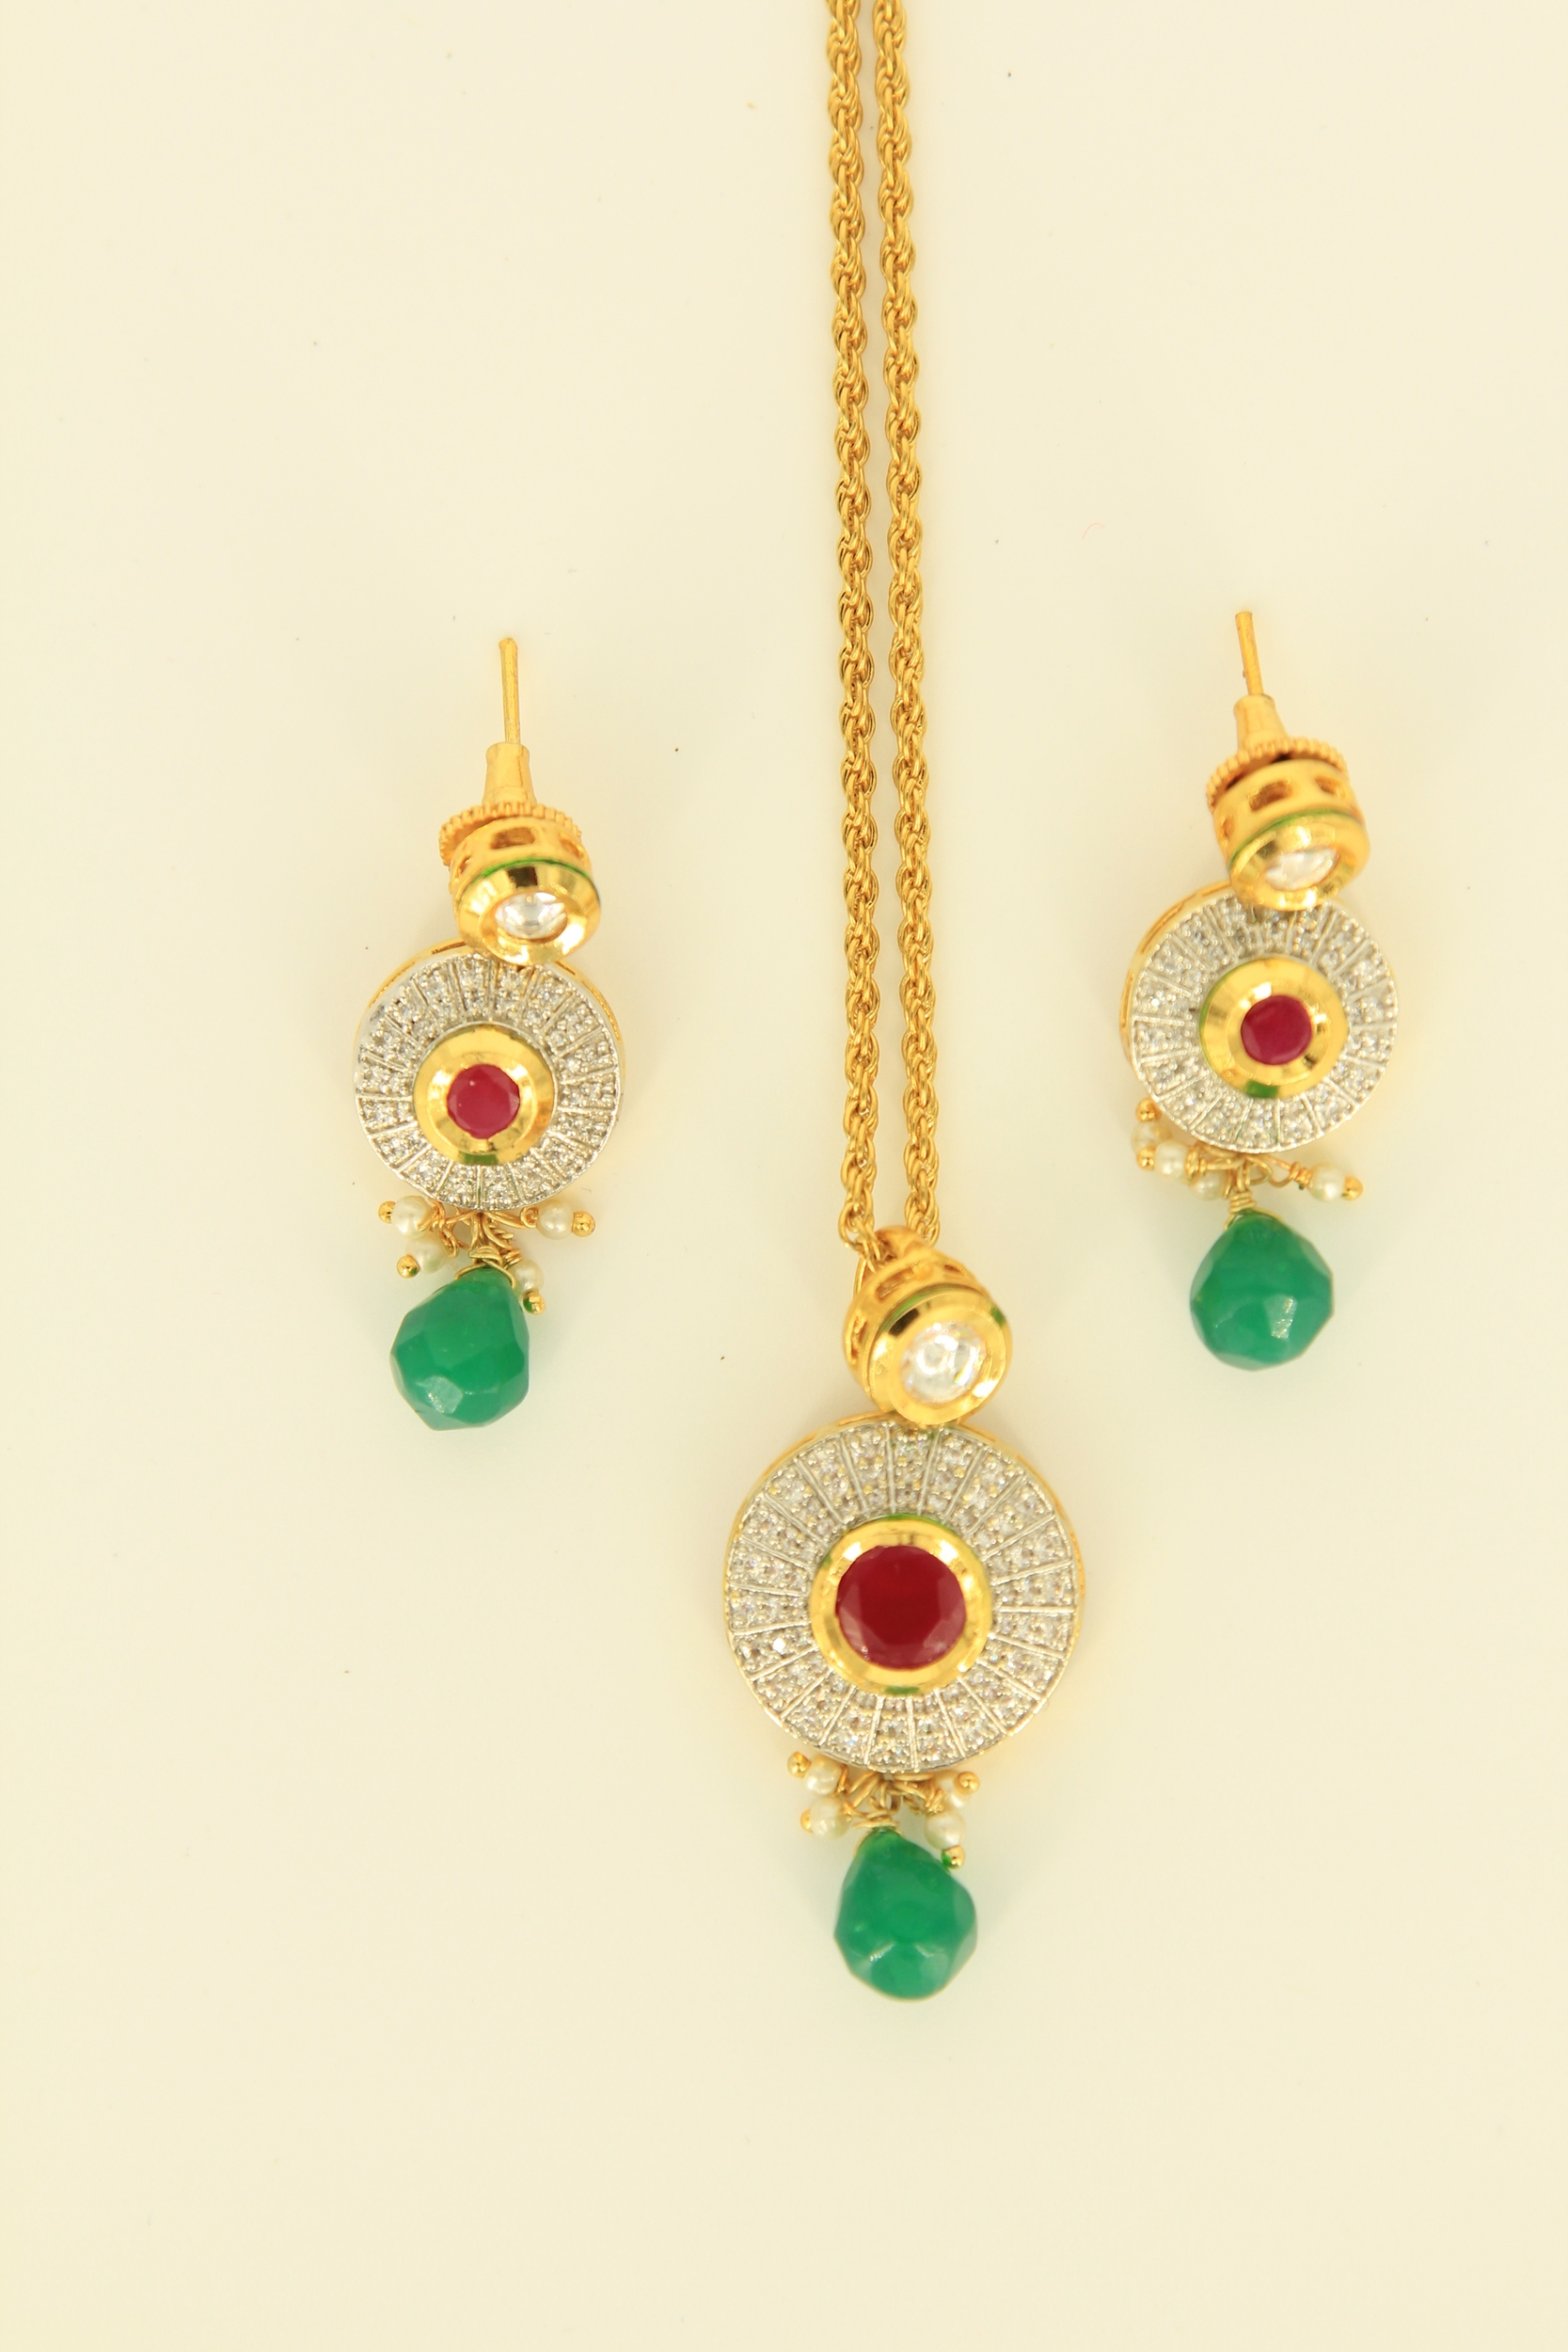 'Elegance' Pendant on chain with earrings